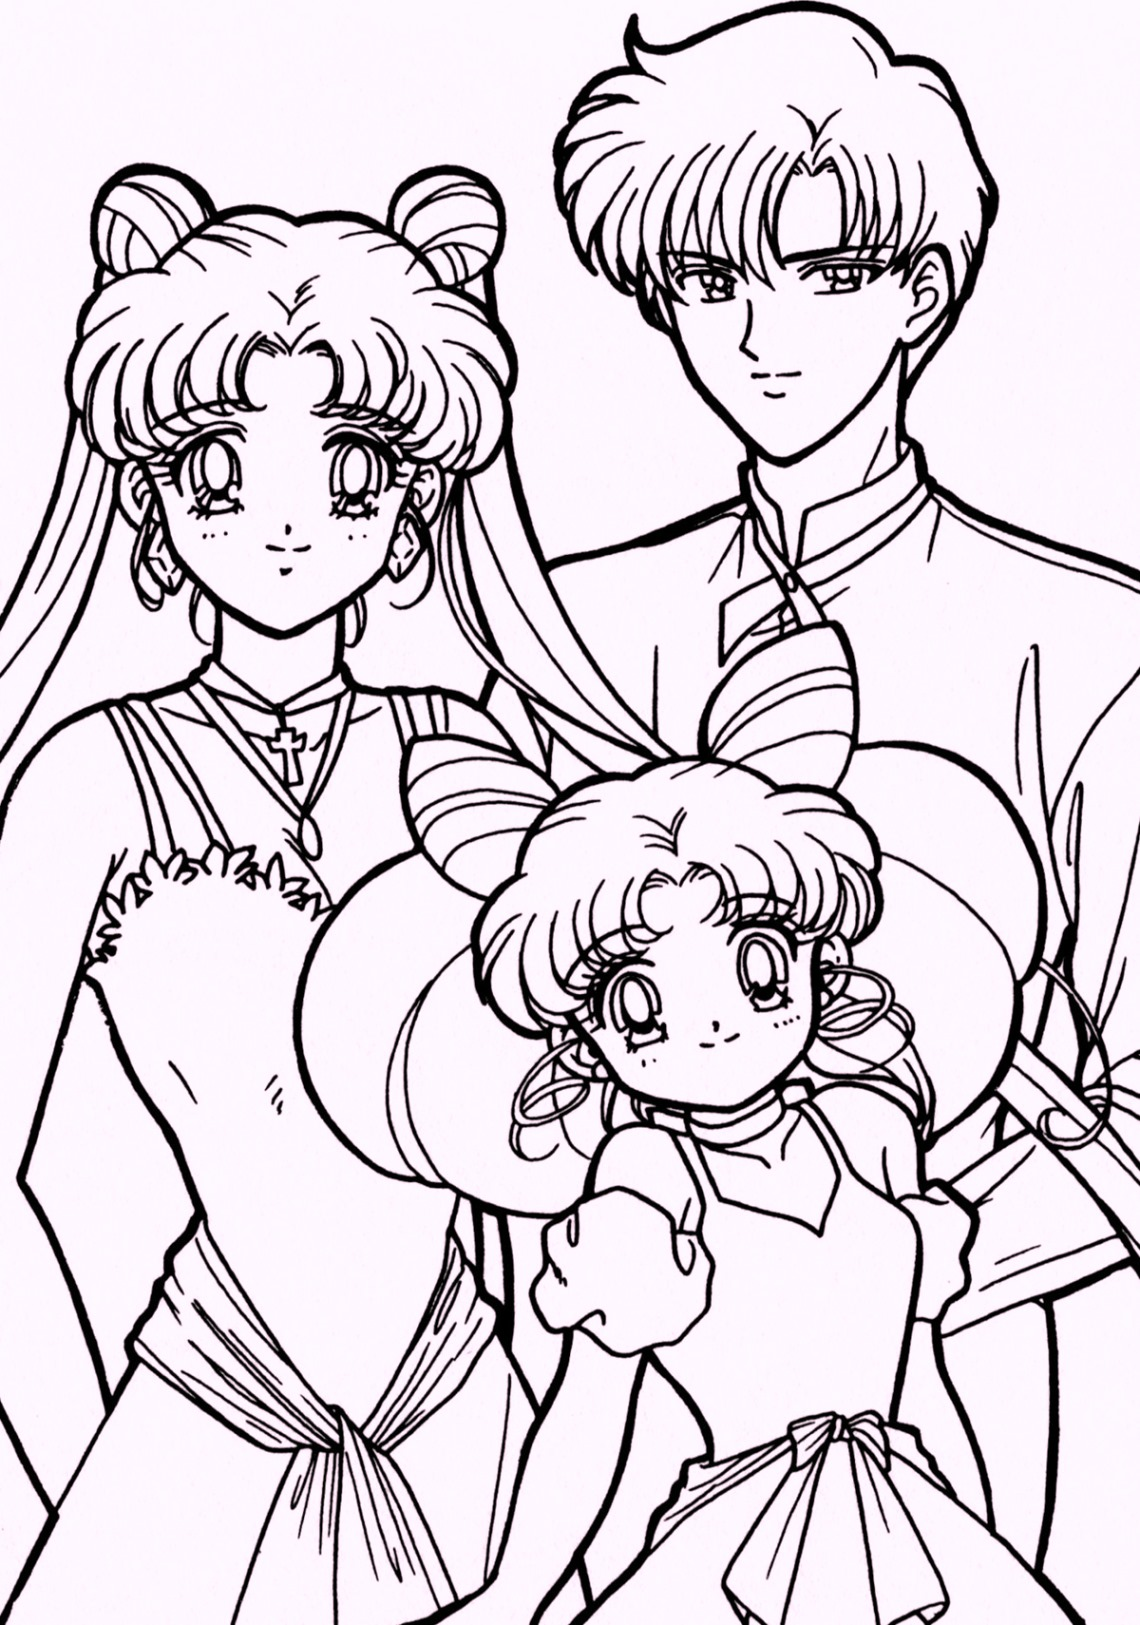 coloring pages sailor moon sailor moon coloring 04